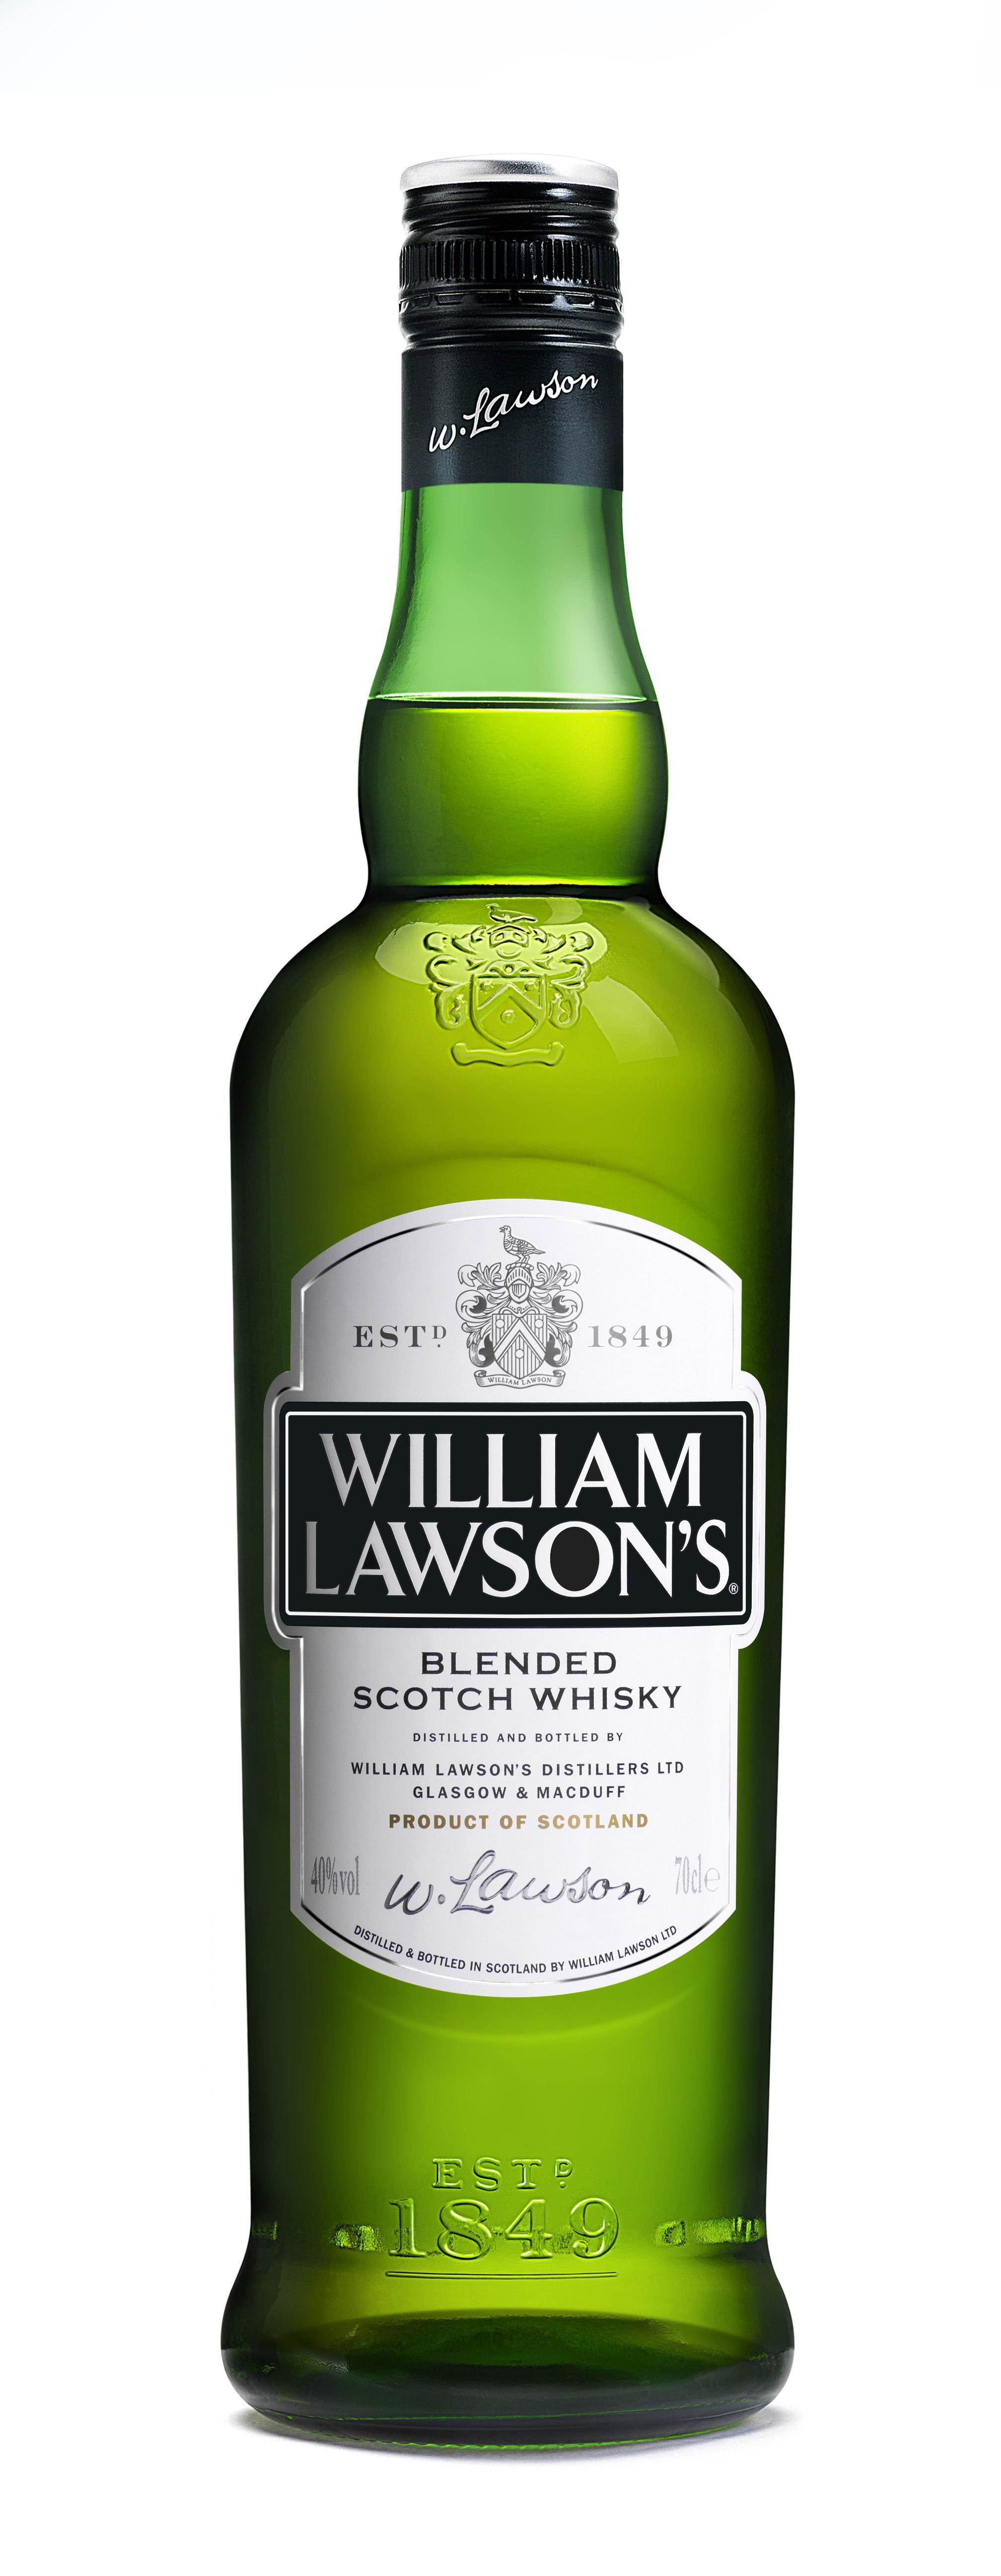 William Lawson's 70cl 40% Blended Scotch Whisky